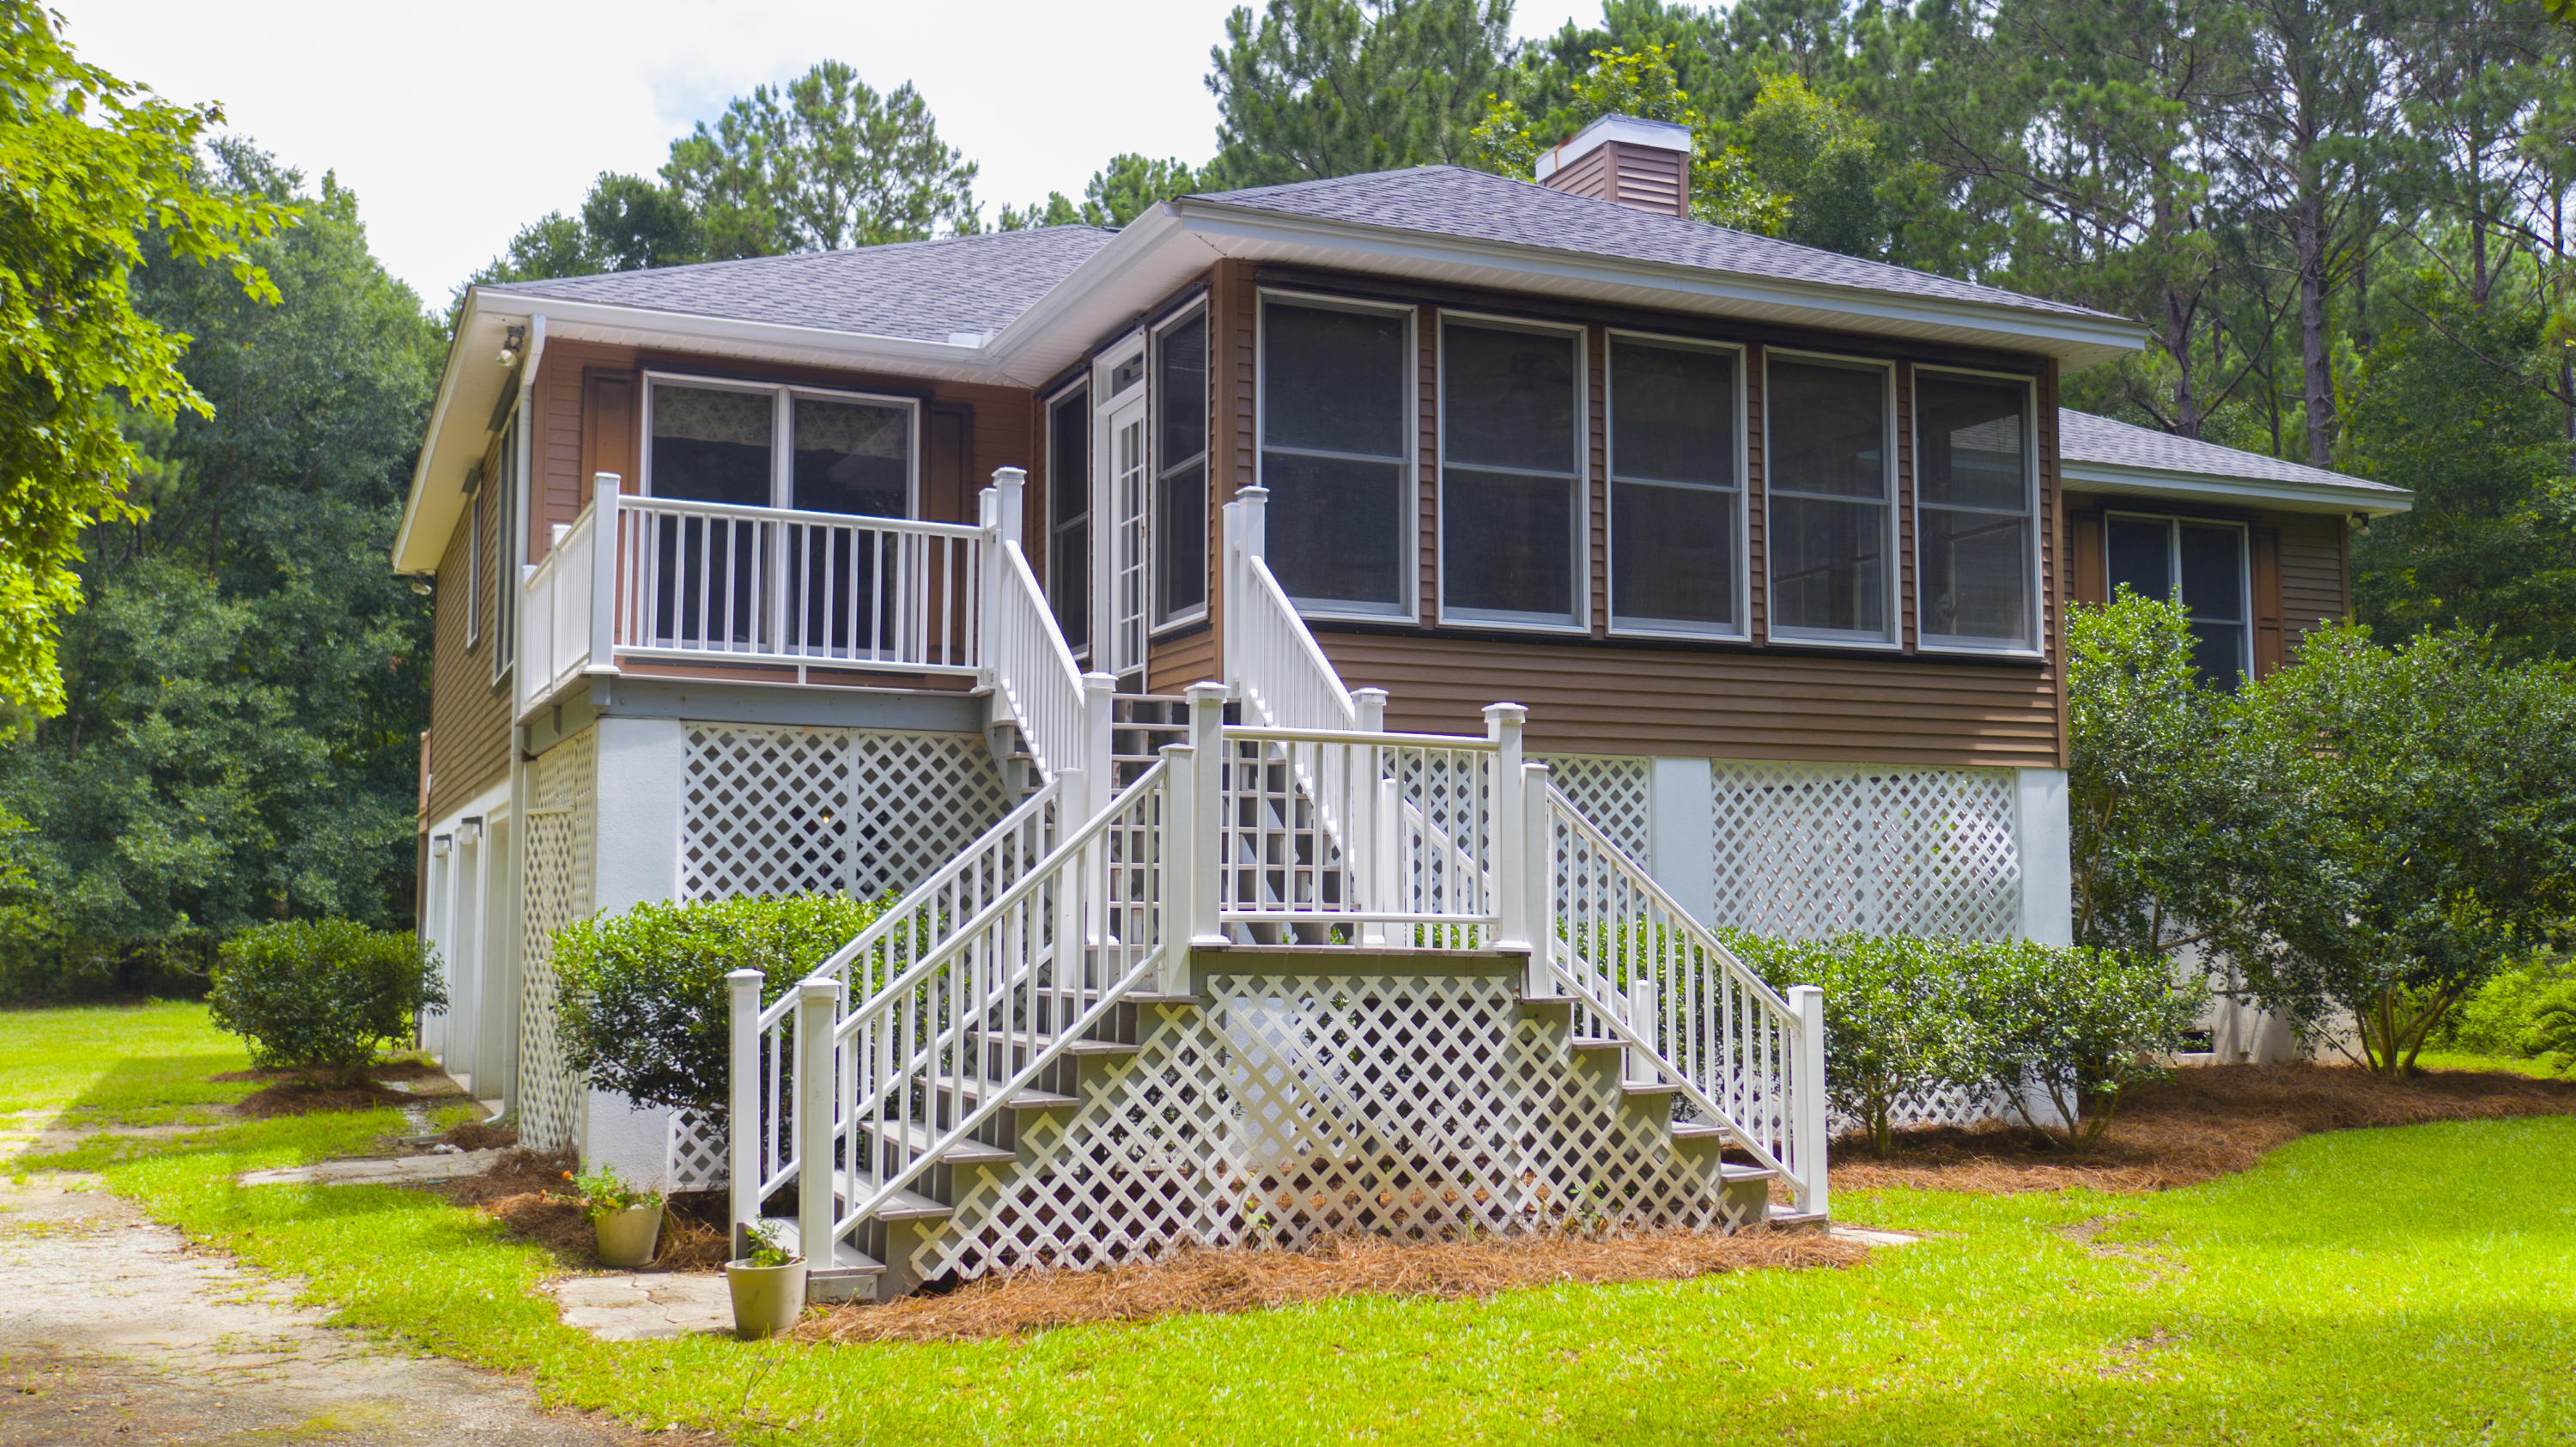 6148 Caravelle Court Awendaw, Sc 29429